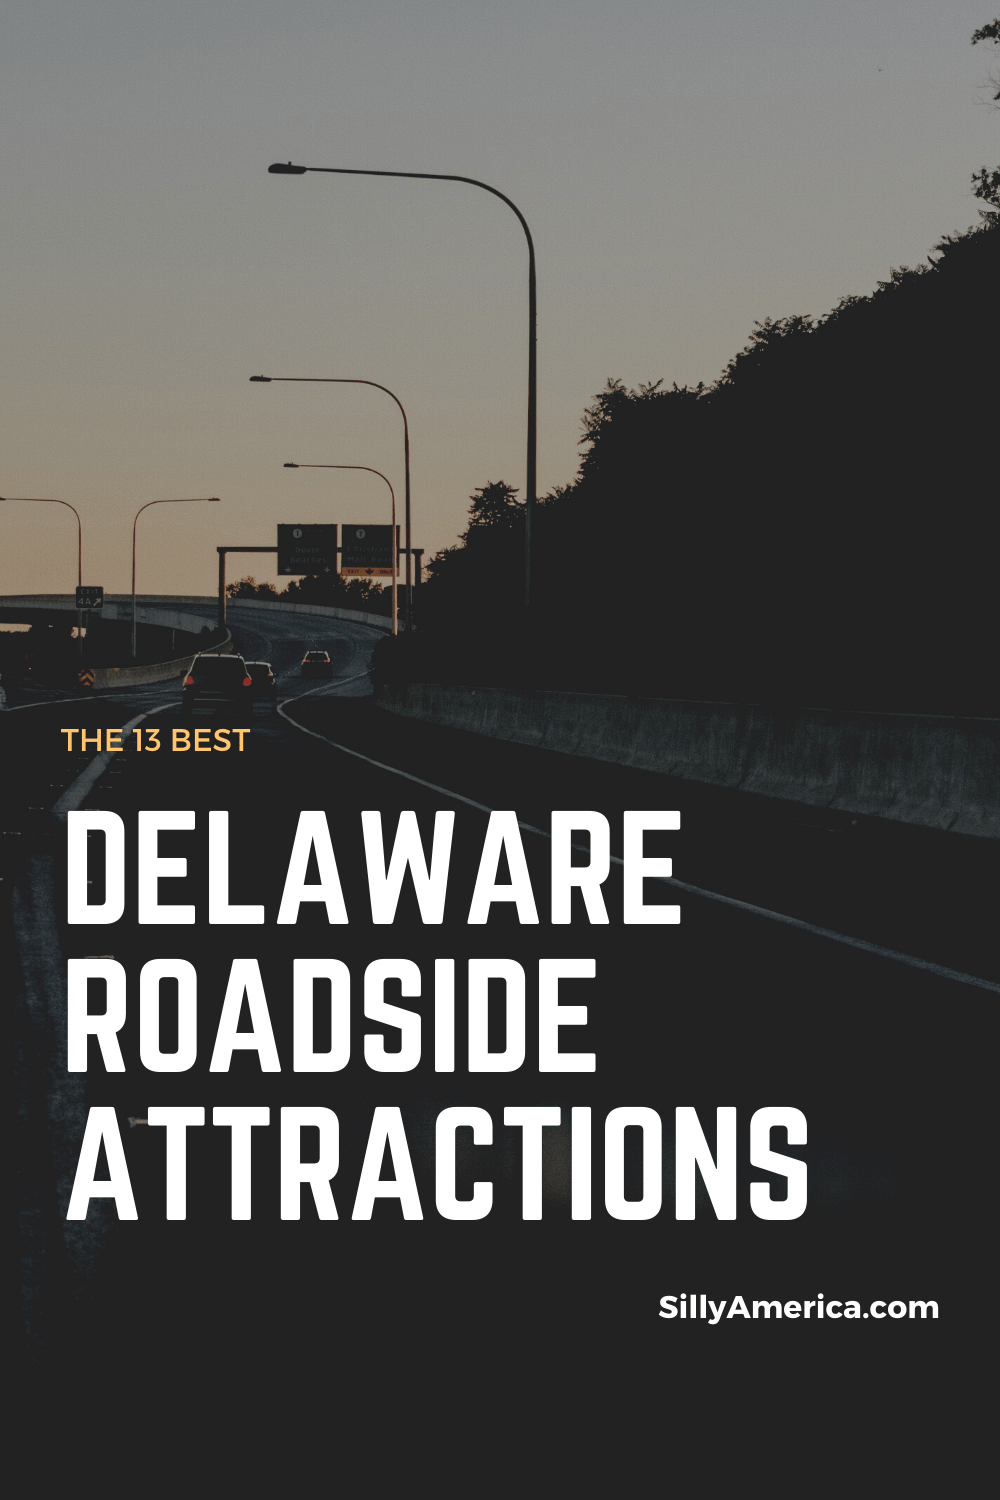 The best Delaware roadside attractions to visit on a Delaware road trip. Add these roadside oddities to your travel bucket list, itinerary, or route map! Fun road trip stops for kids or adults! #DelawareRoadsideAttractions #DelawareRoadsideAttraction #RoadsideAttractions #RoadsideAttraction #DelawareRoadTrip #DelawareRoadTripItinerary #RoadTrip #WeirdRoadsideAttractions